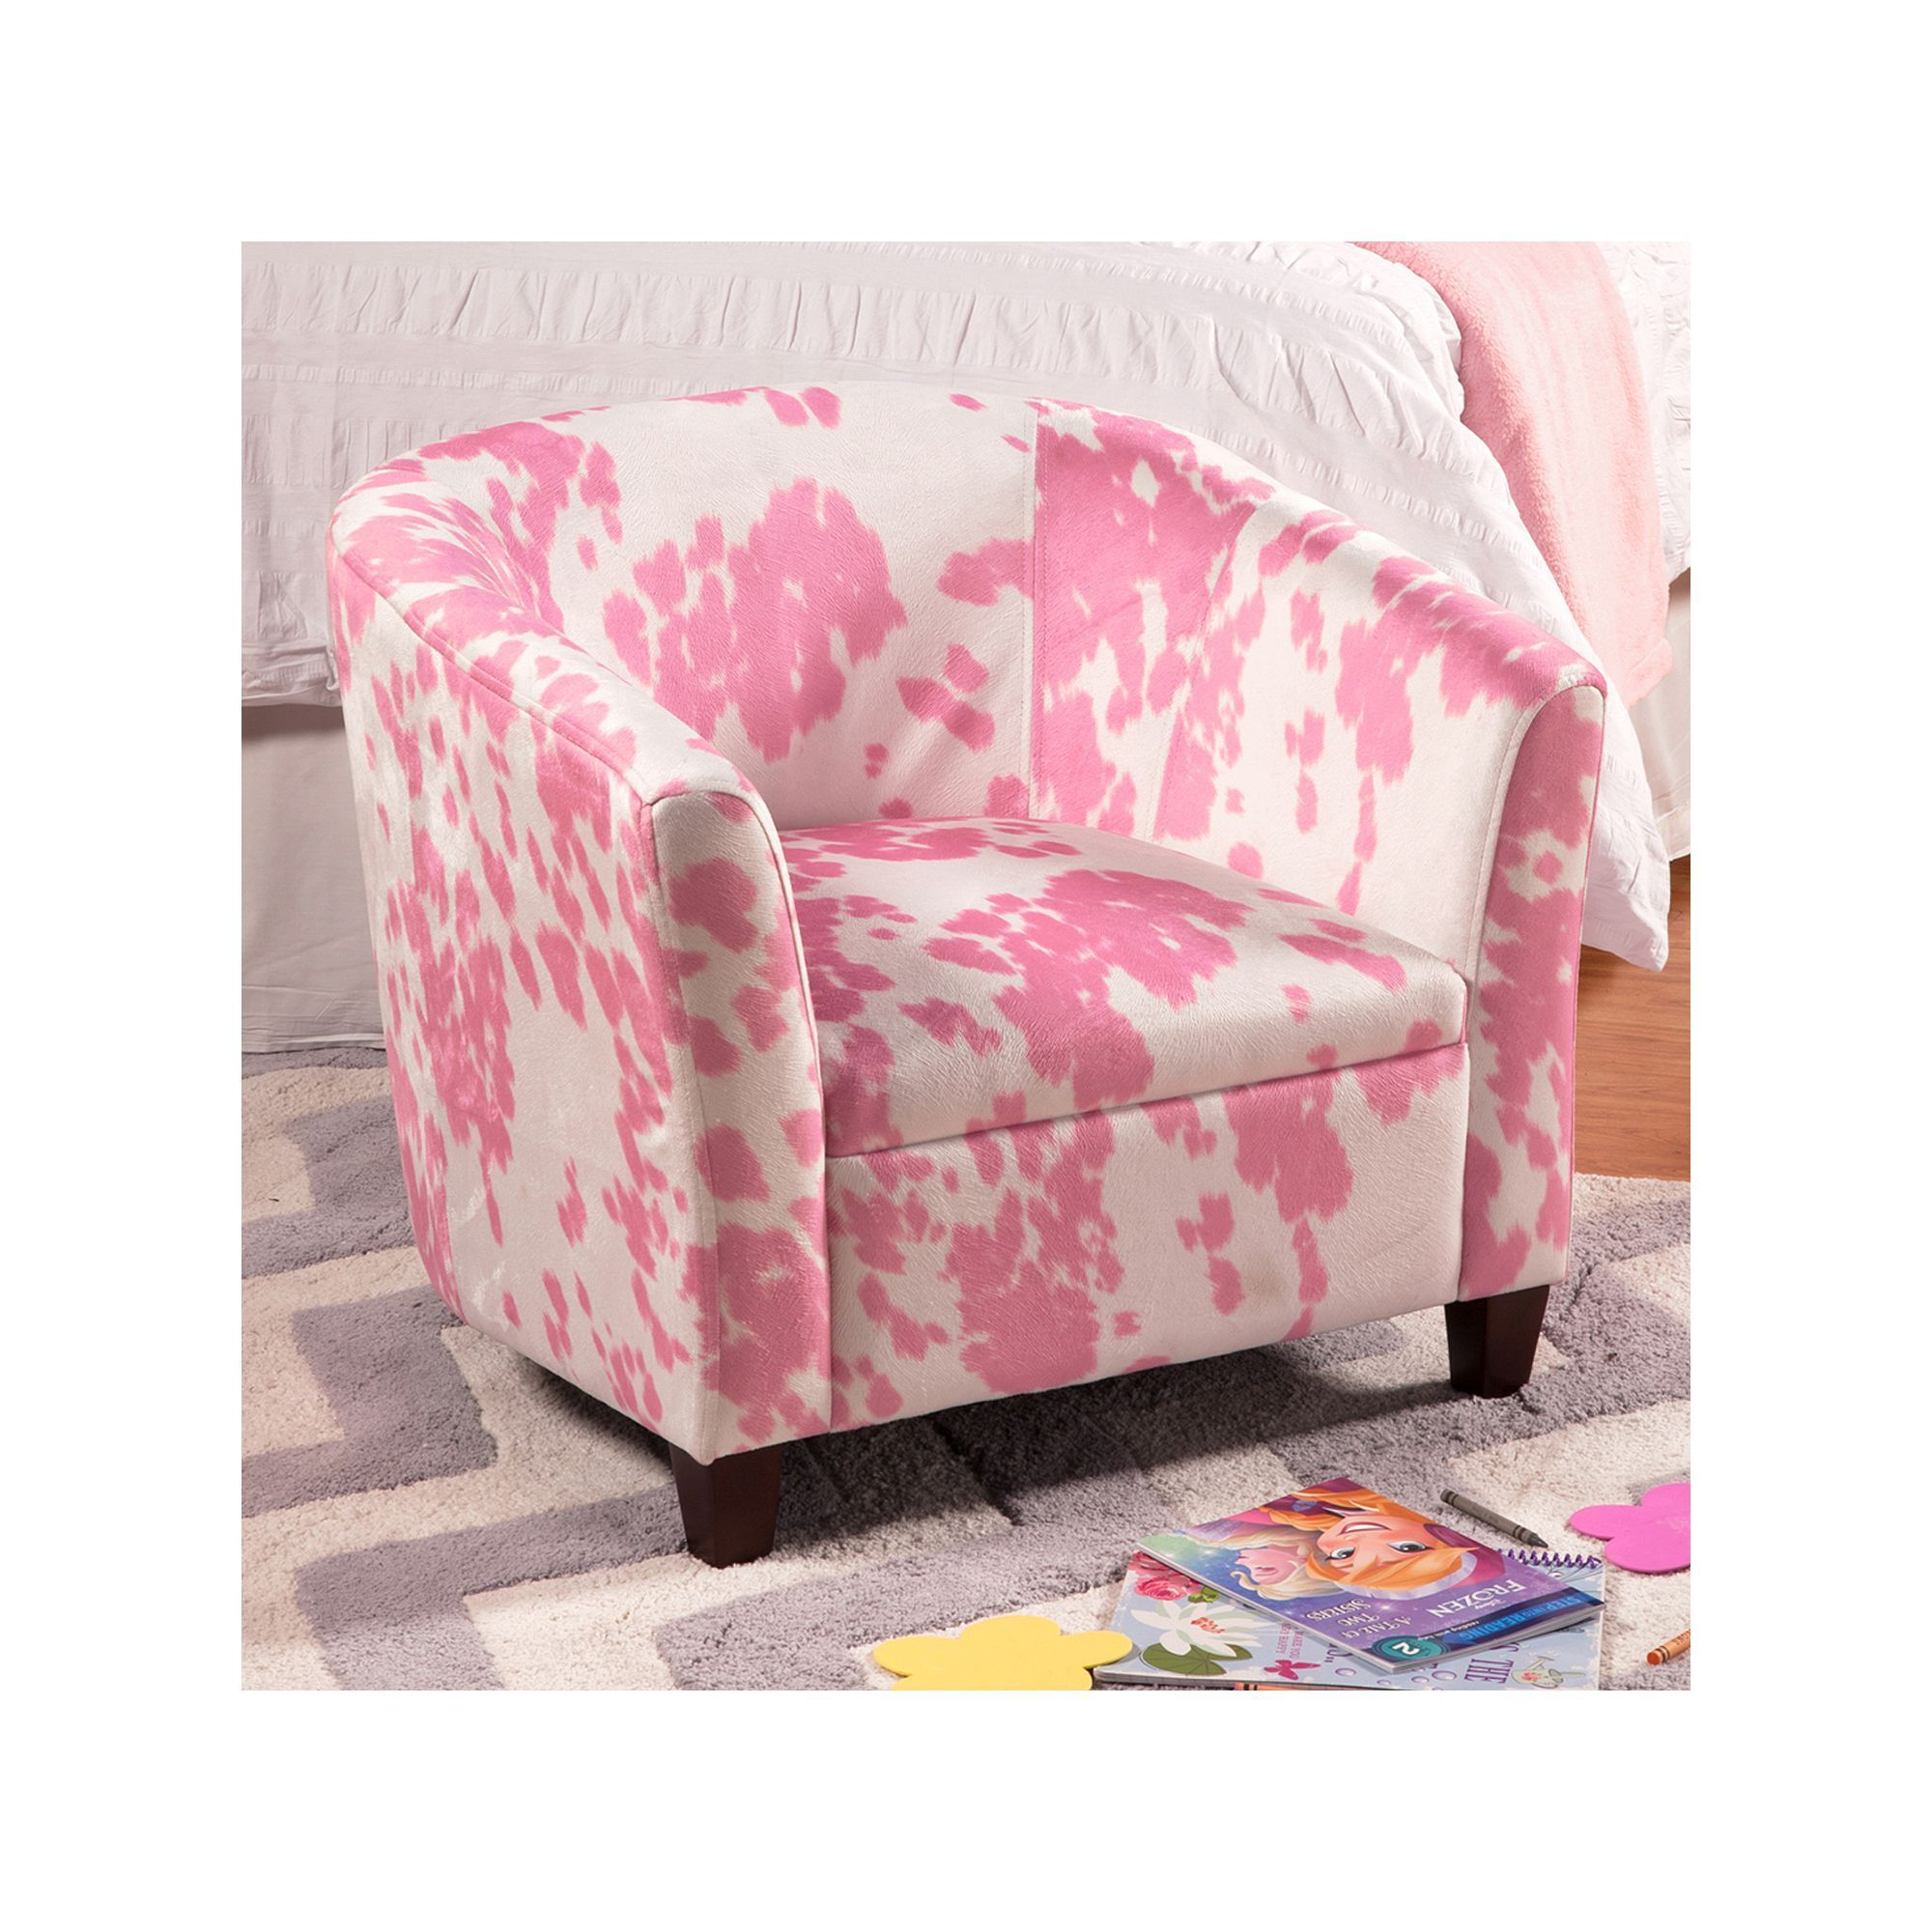 Cowhide Print Accent Chair Dining Covers For Wedding Homepop Cow Juvenile Pink Products